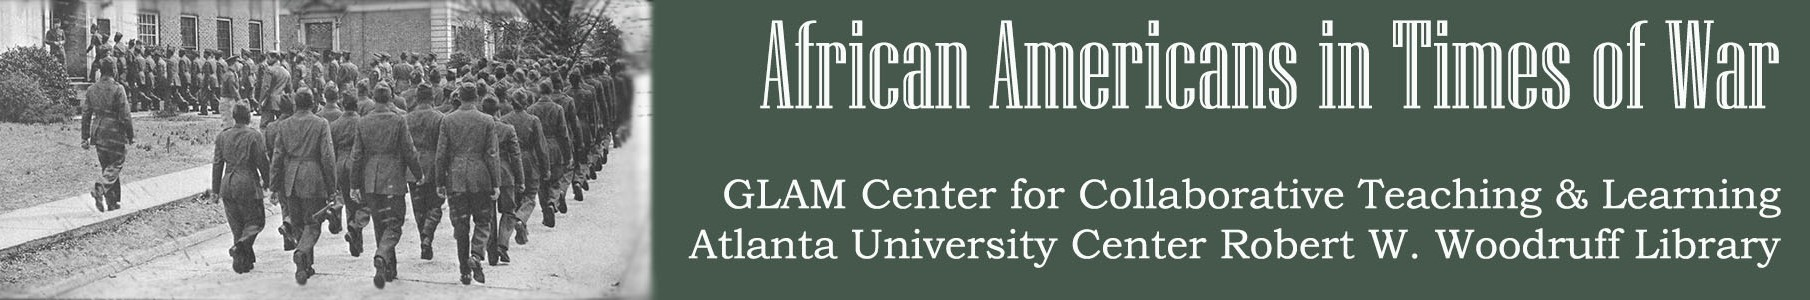 Link to the Atlanta University Center Galleries, Libraries, Archives and Museums (GLAM) Center for Collaborative Teaching & Learning's collection, 'African Americans in Times of War'